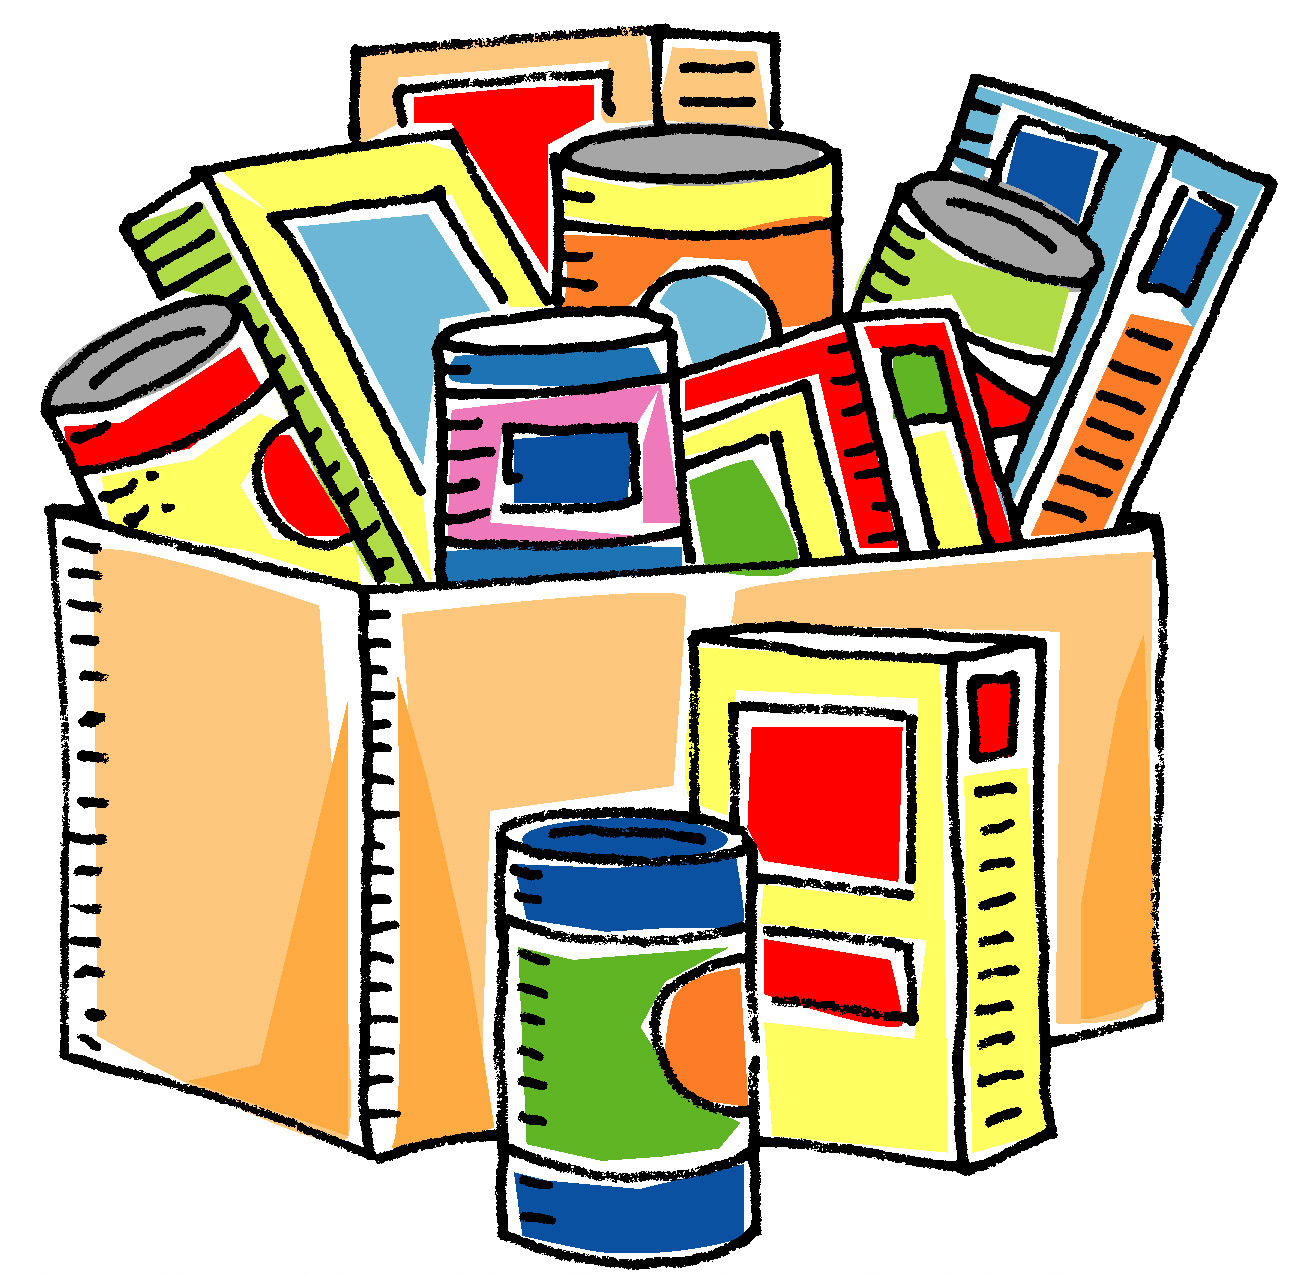 83 Images Of Food Pantry You Can Use The-83 Images Of Food Pantry You Can Use These Frees For Clipart-4